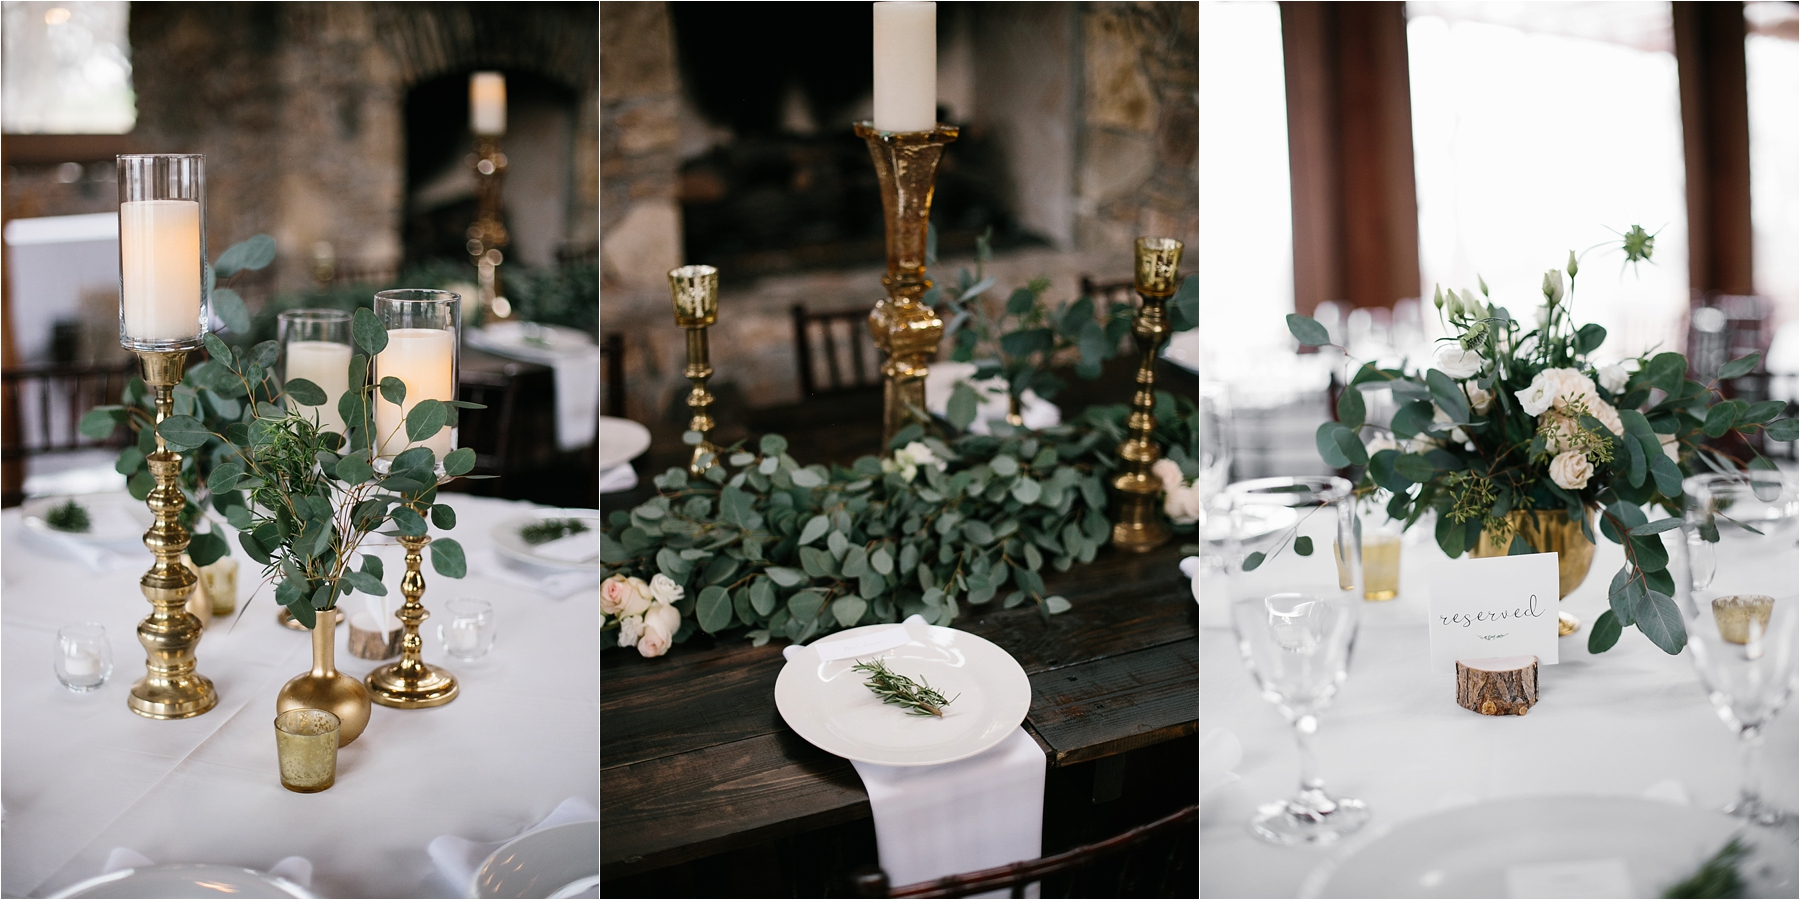 Lauren + Matt __ an intimate, emotional, blush pink, navy blue, and greenery toned wedding accents at the Brooks at Weatherford by North Texas Wedding Photographer Rachel Meagan Photography099